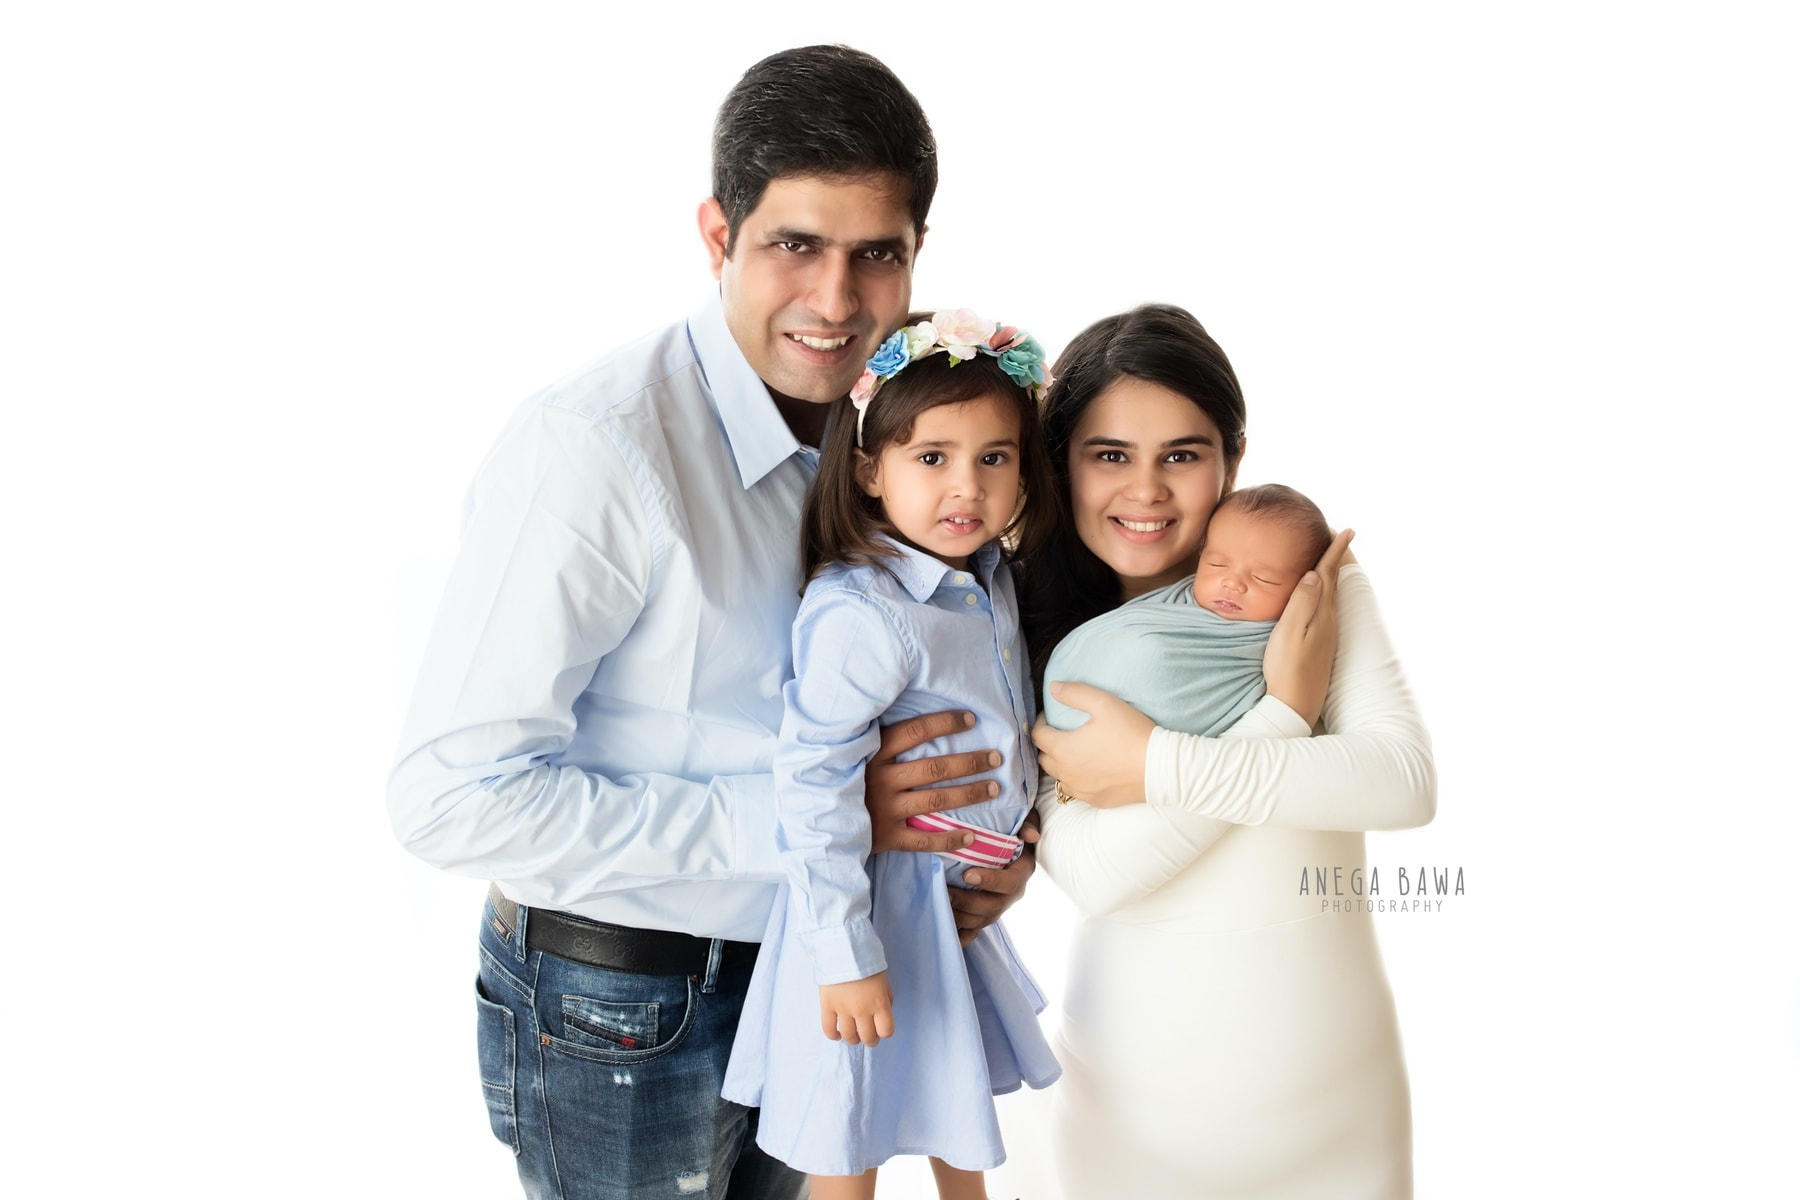 white blue family photography delhi 11 days newborn photoshoot gurgaon anega bawa